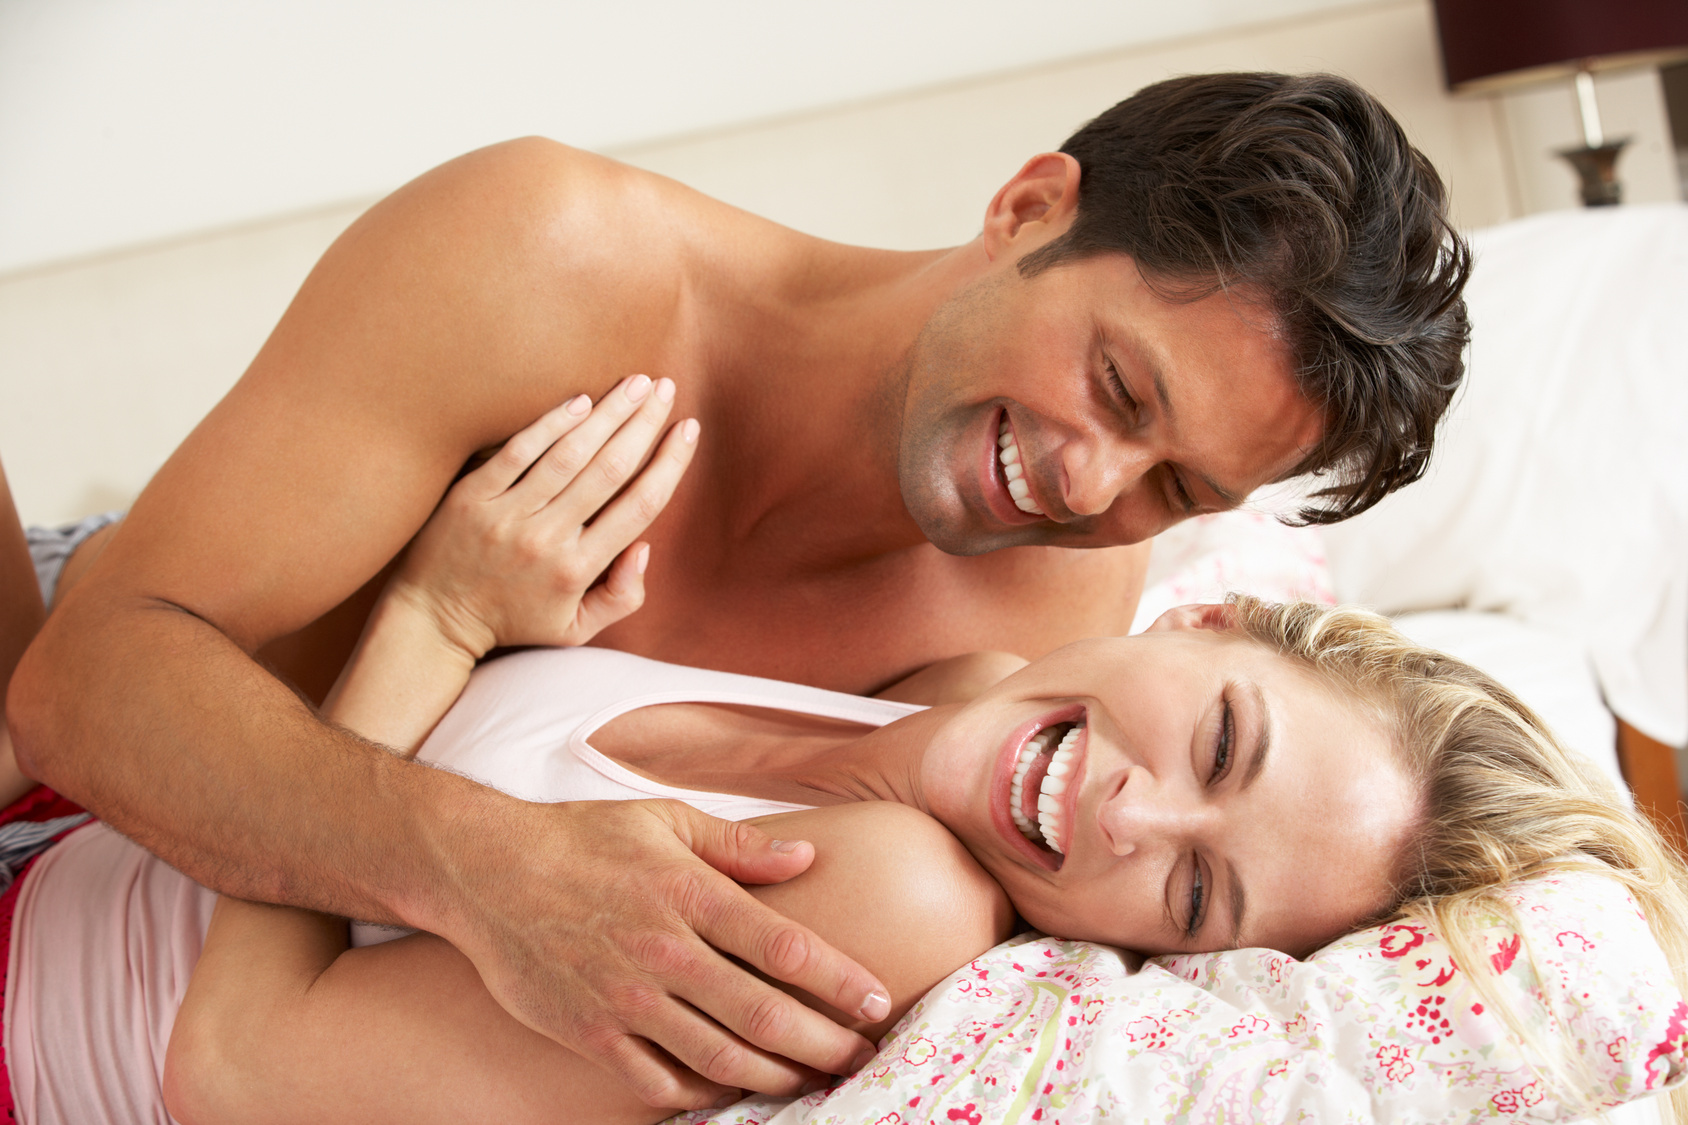 Why Women Lose Interest in Sex - WebMD